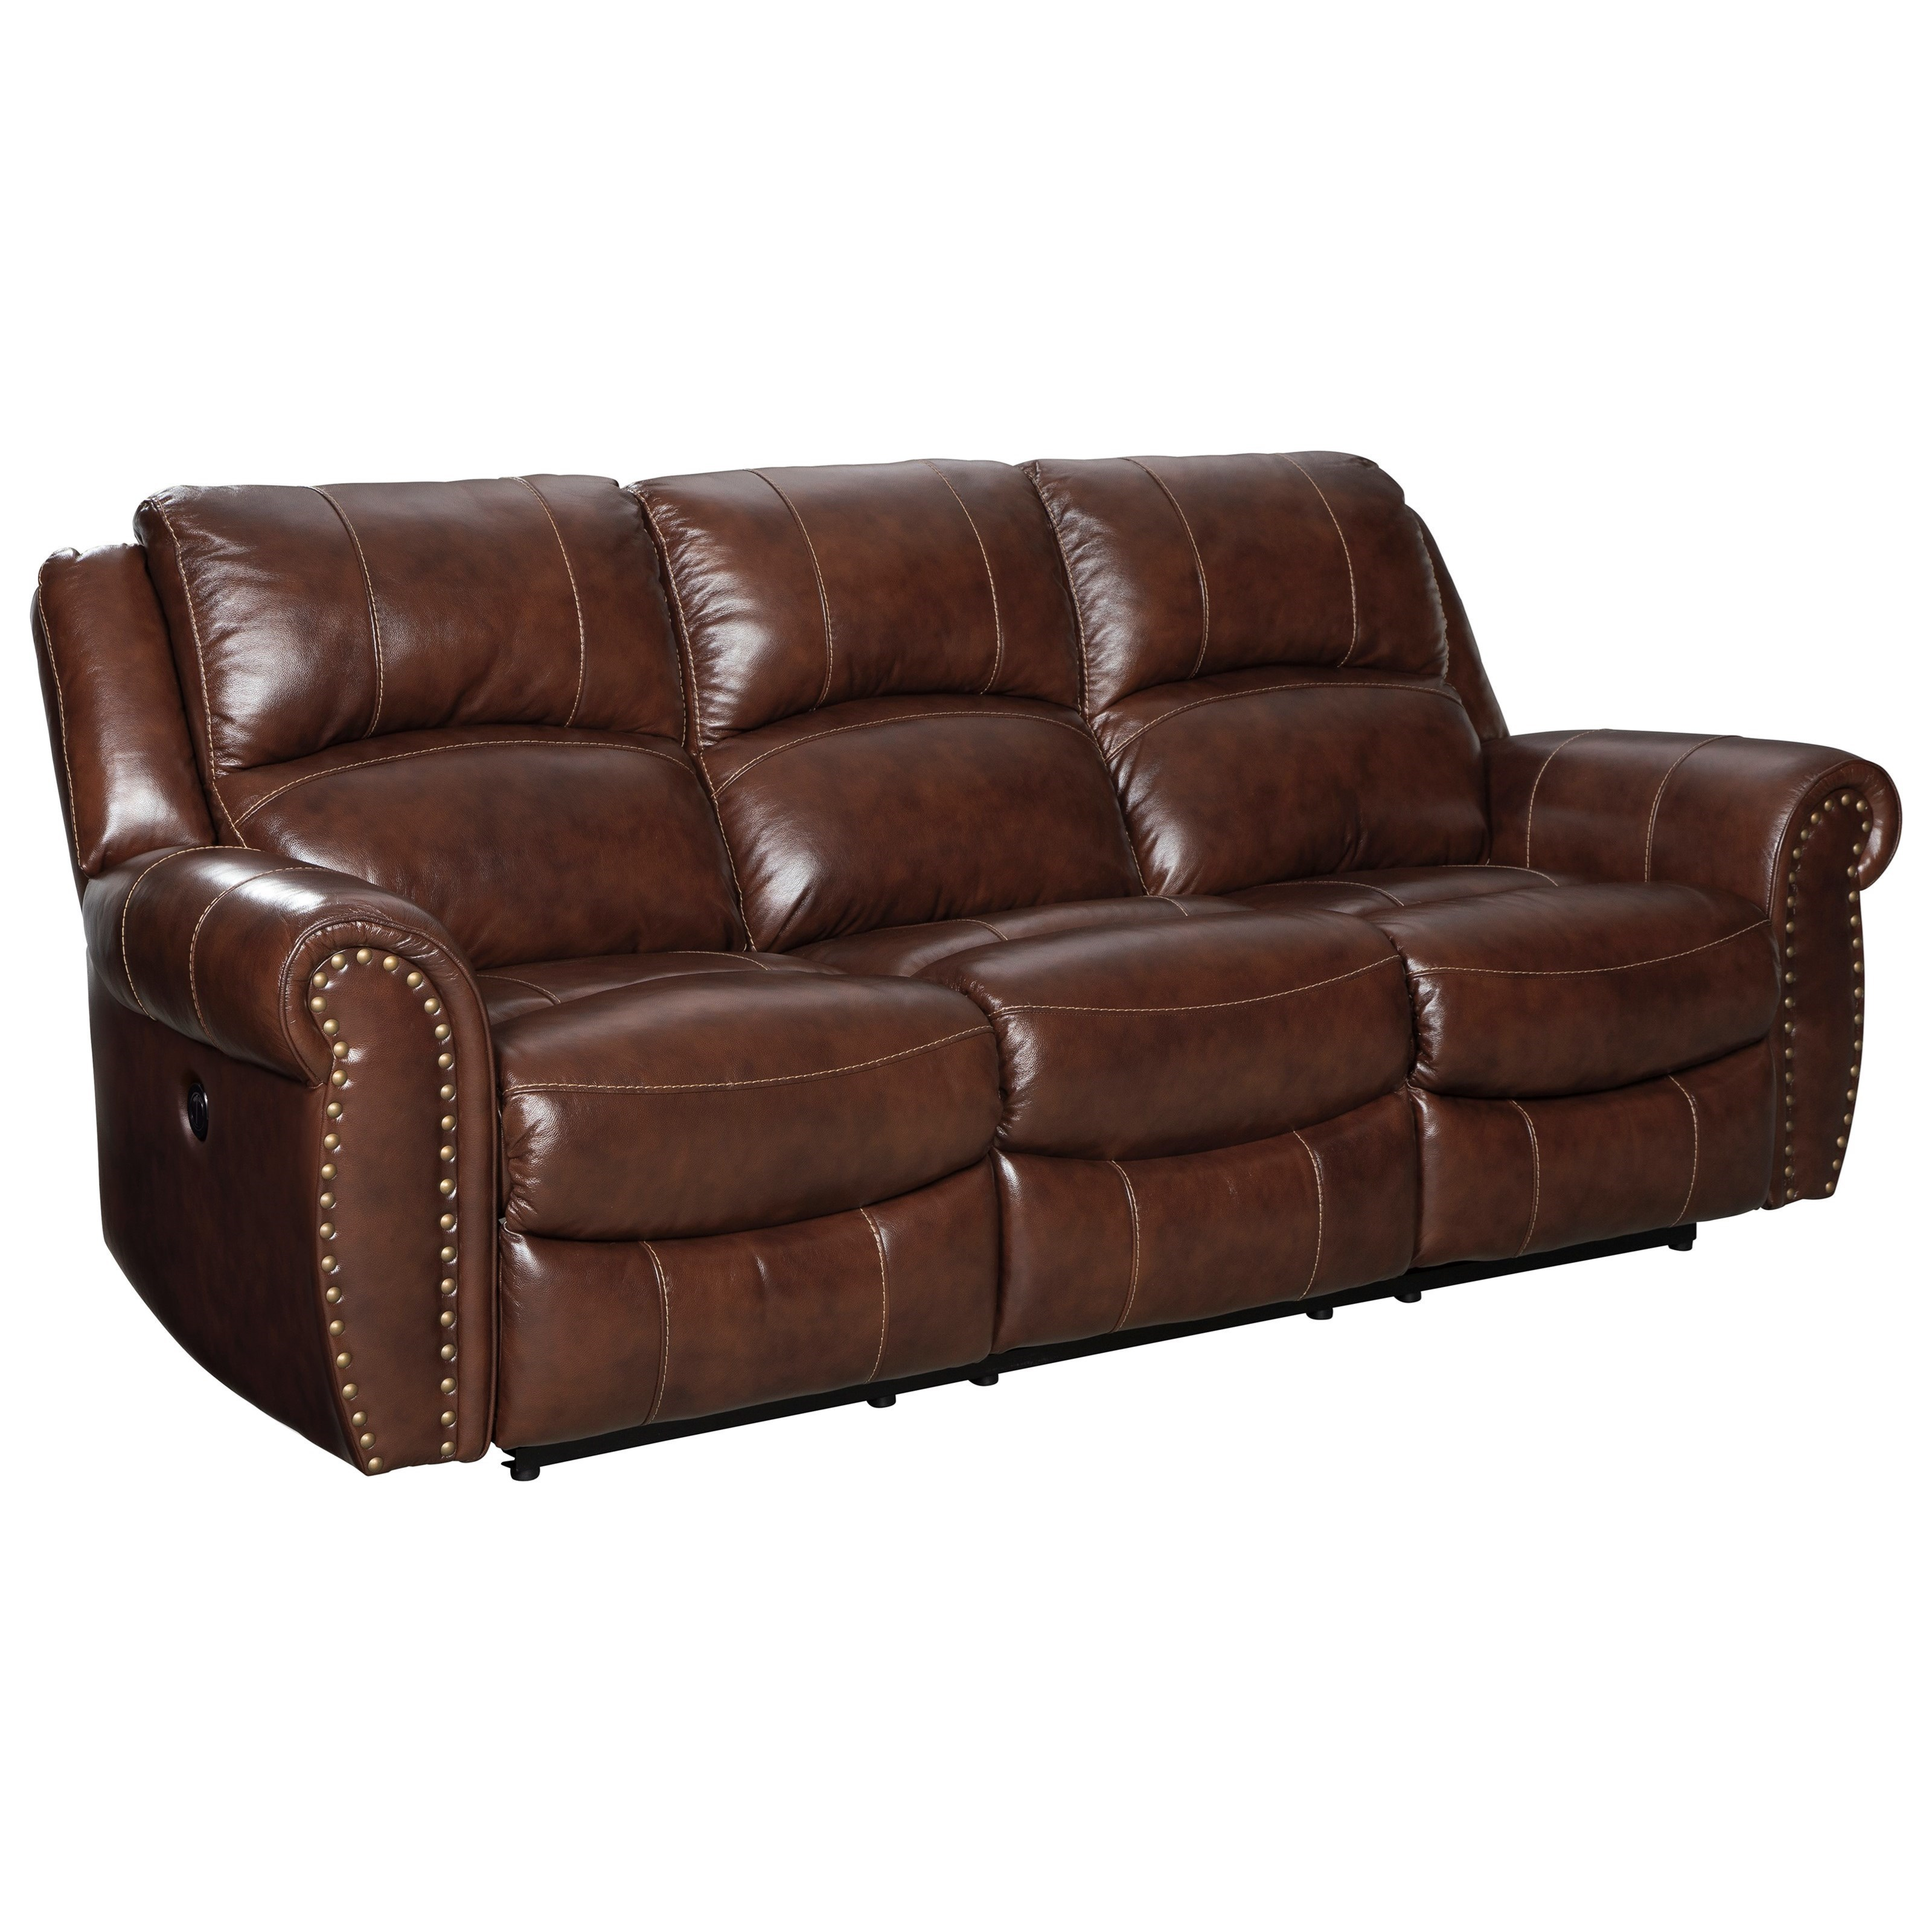 Signature Design By Ashley Bingen Traditional Reclining Sofa With Nailhead  Trim